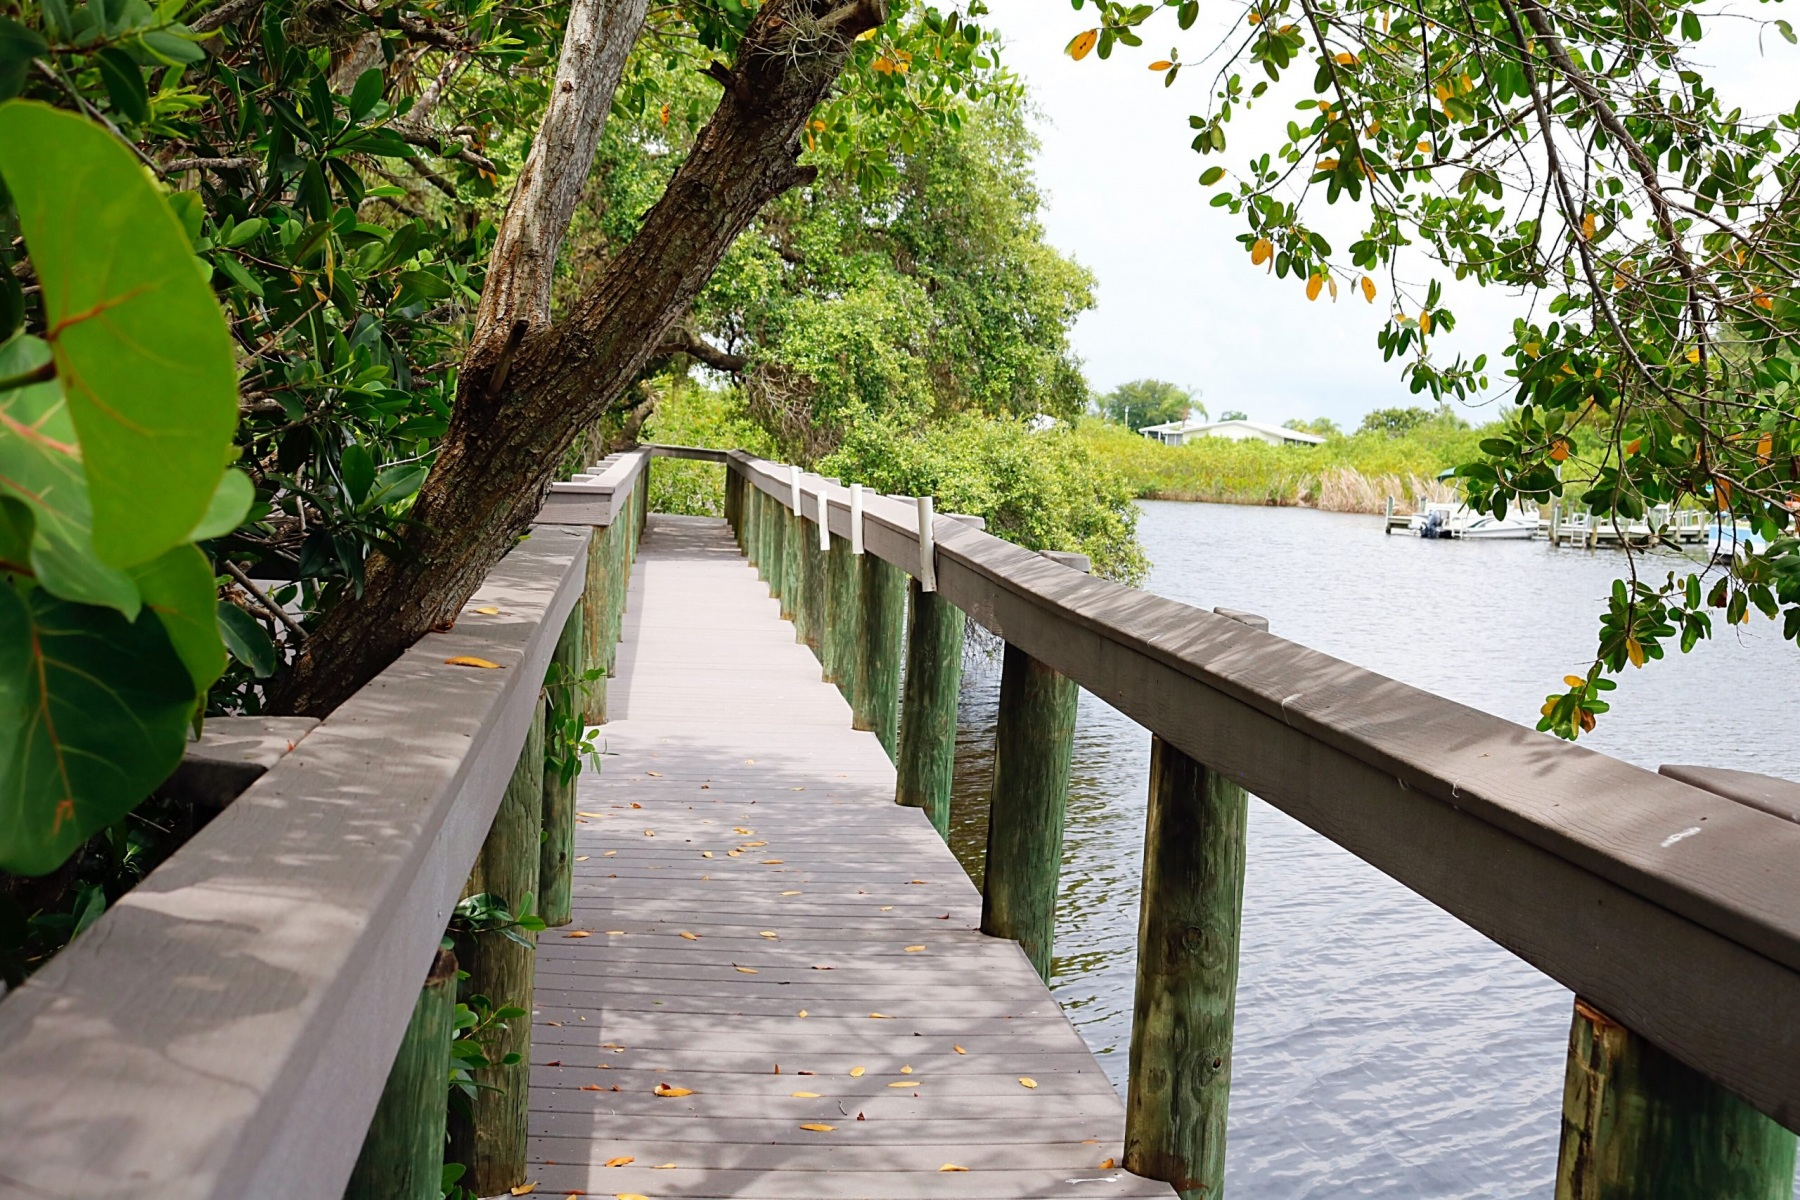 Riverwalk-boardwalk-along-water-scaled